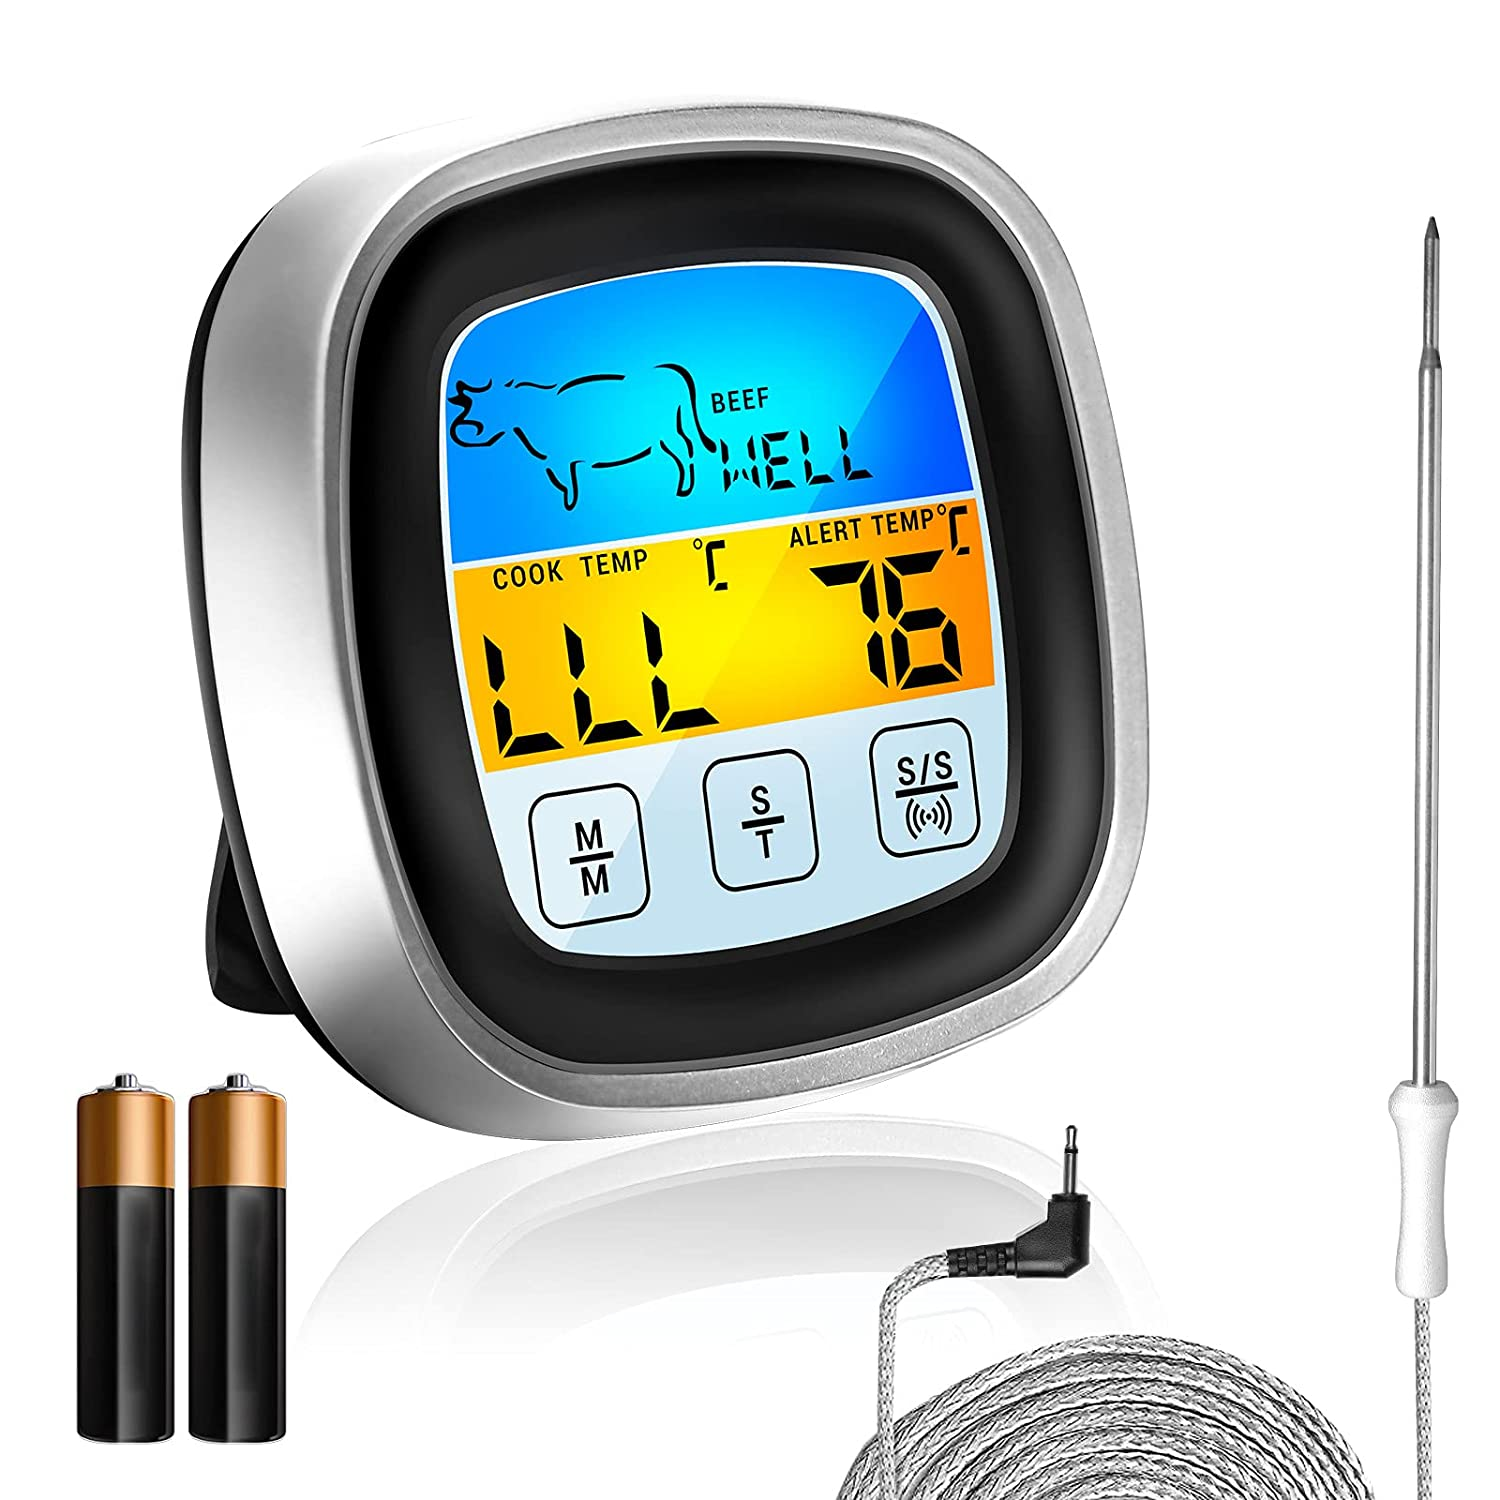 Instant Read Meat Thermometer, 8 Meats Modes and Timer Modes, Digital Color Touch Screen LCD Display with 40 inch Food Meat Thermometer for Cooking, Oven, BBQ, Frying Pan, Candy, Milk, Yogurt